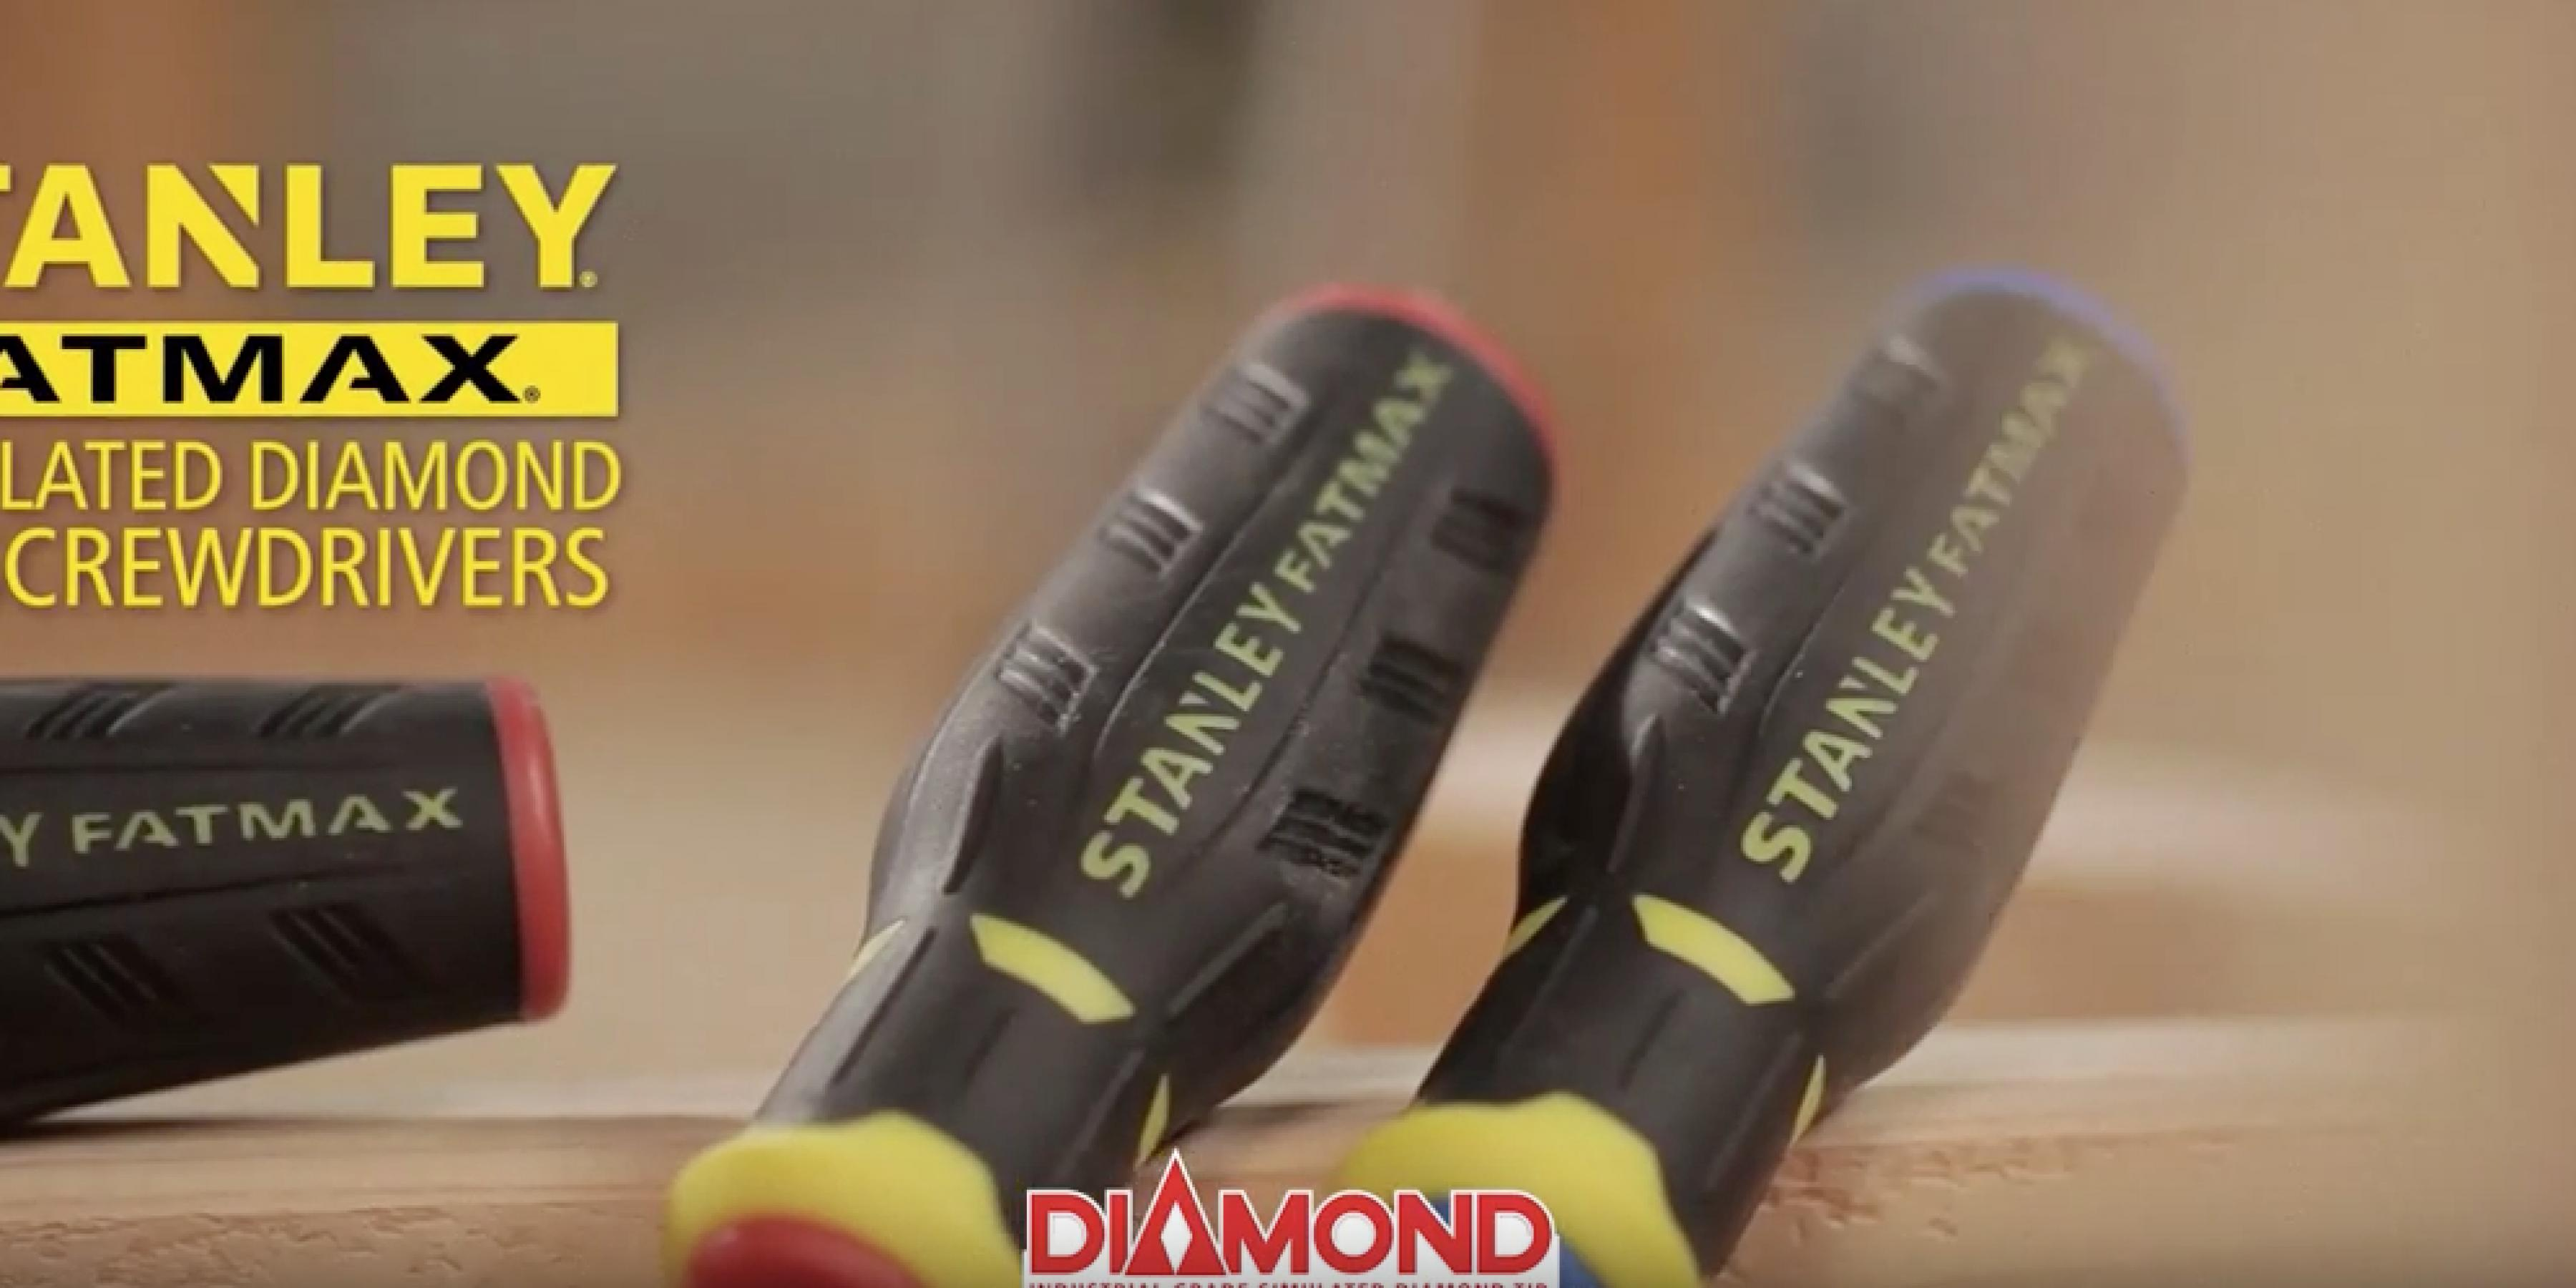 STANLEY FatMax® Simulated Diamond Tip Screwdrivers